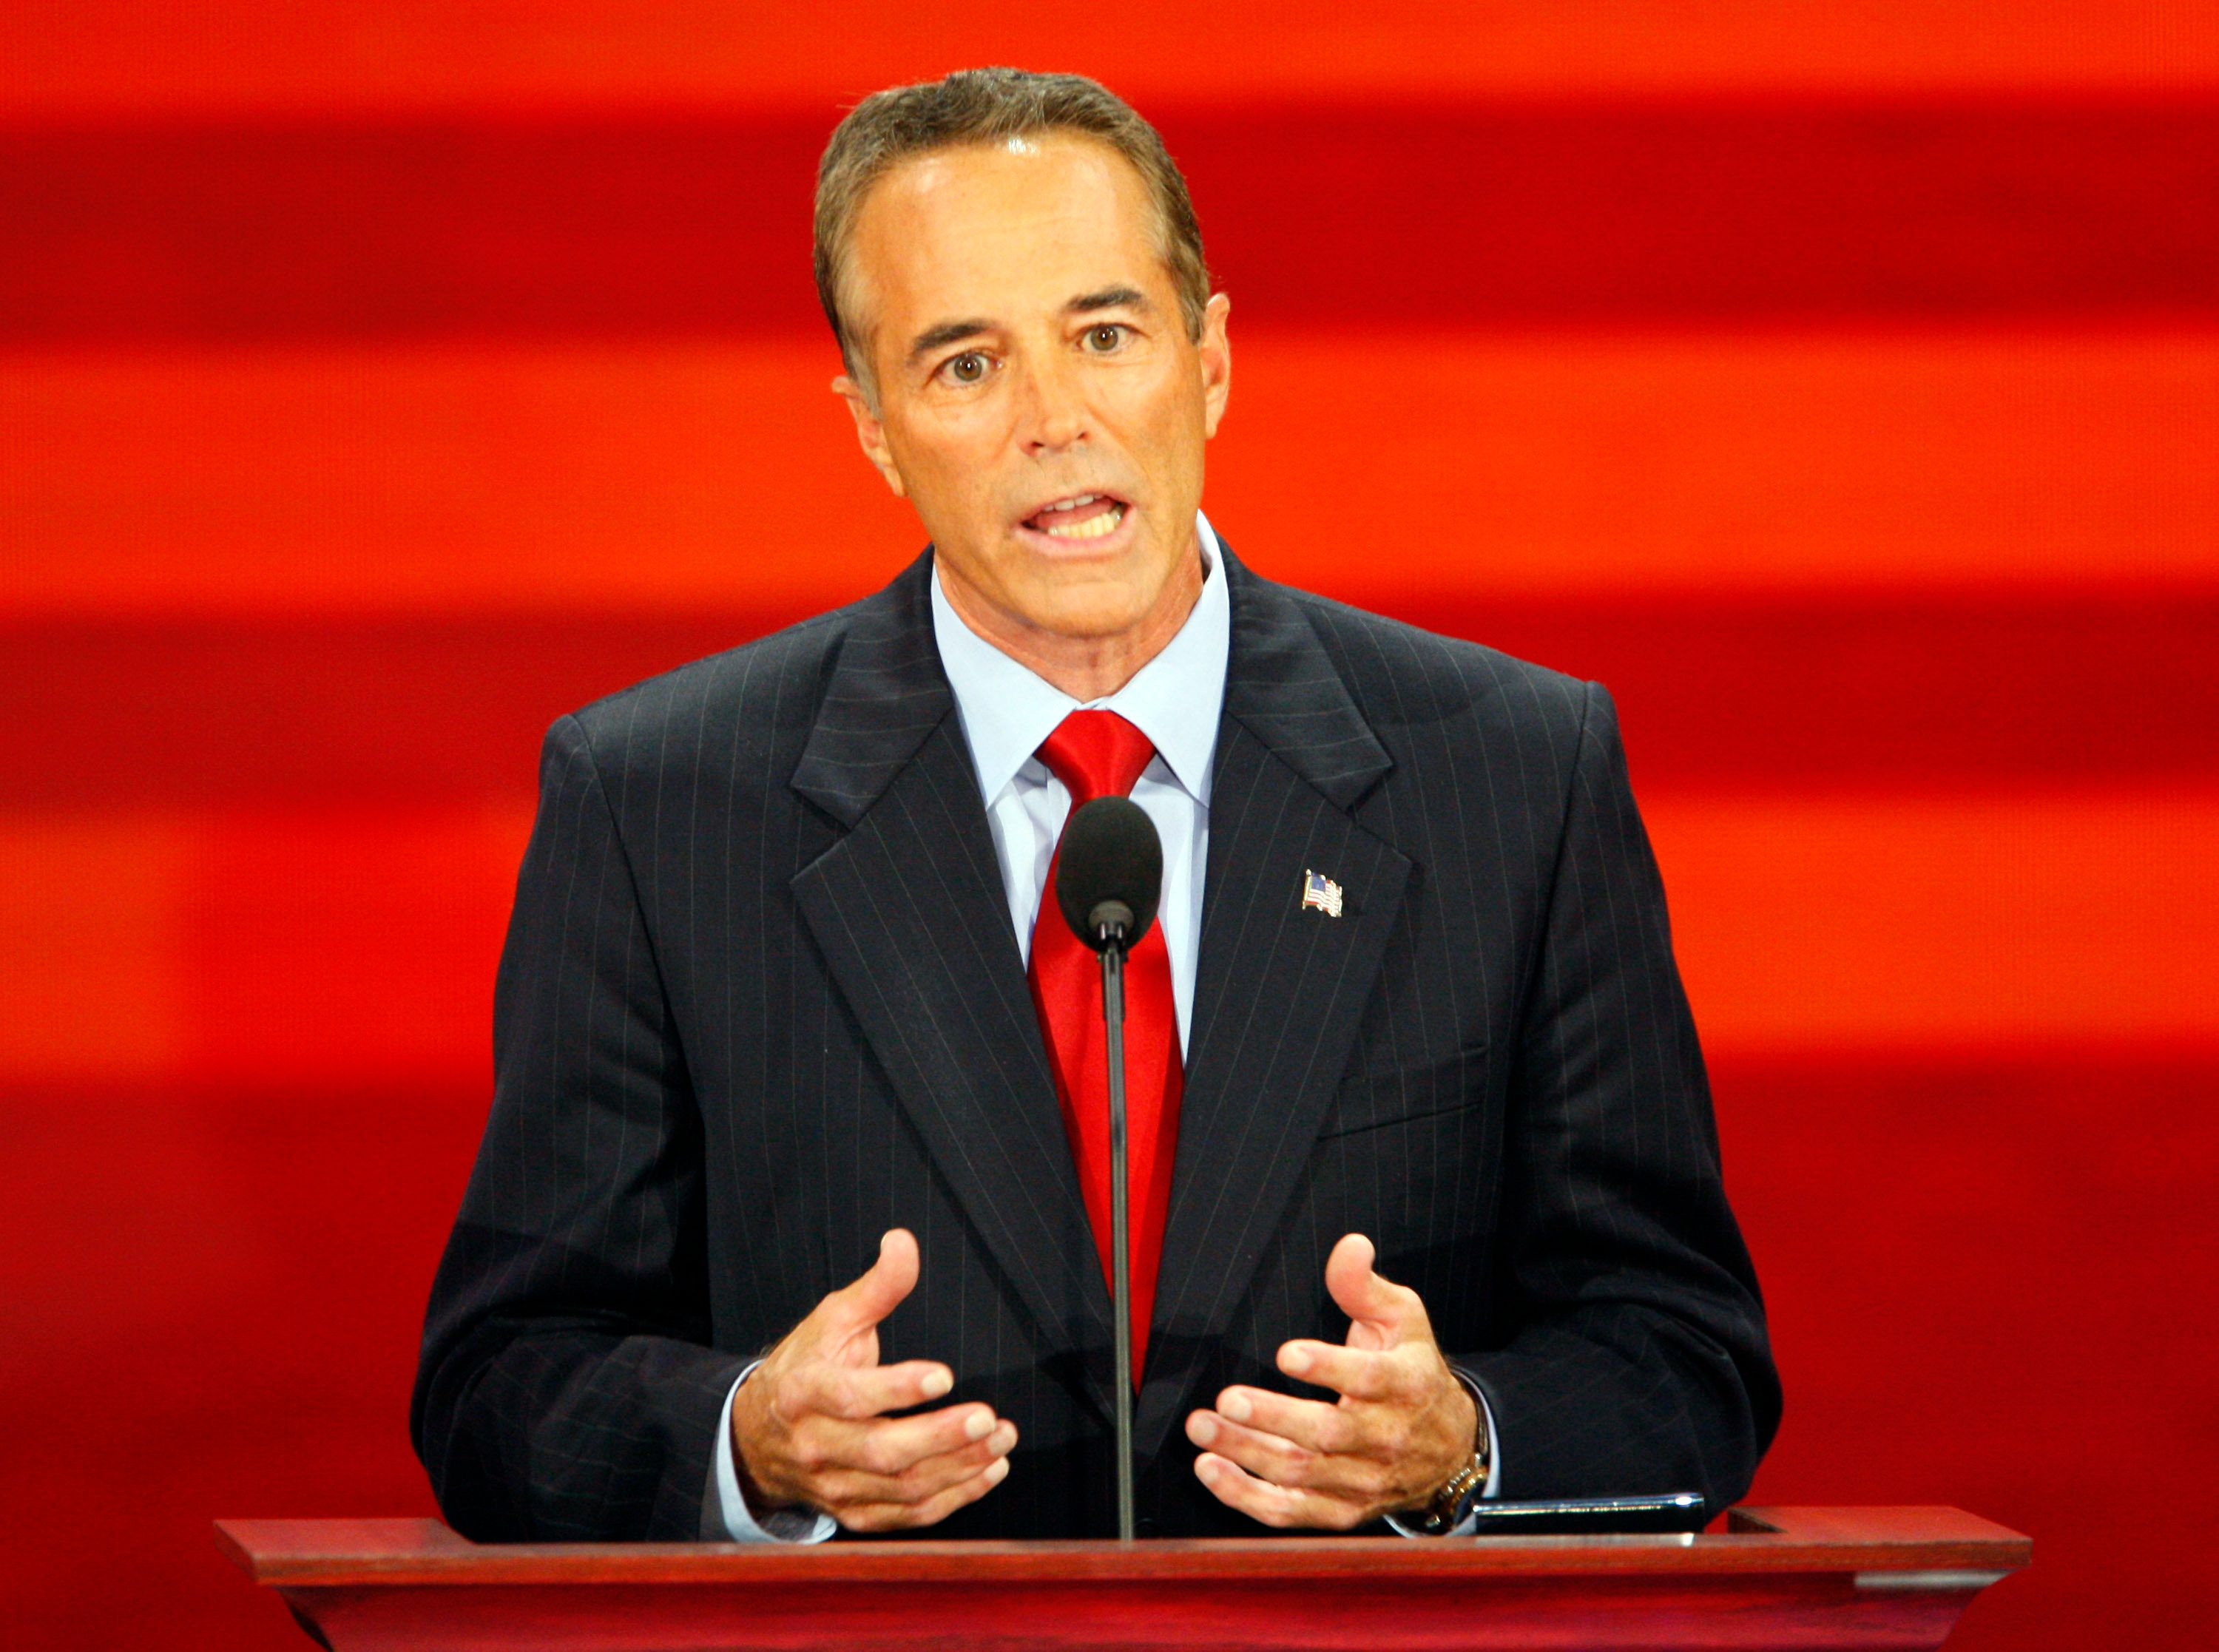 County Executive Chris Collins, from Erie County, New York, speaks during the Republican National Convention at the Xcel Energy Center in St. Paul, Minnesota, Wednesday, September 3, 2008.  (Photo by Harry E. Walker/MCT/MCT via Getty Images)